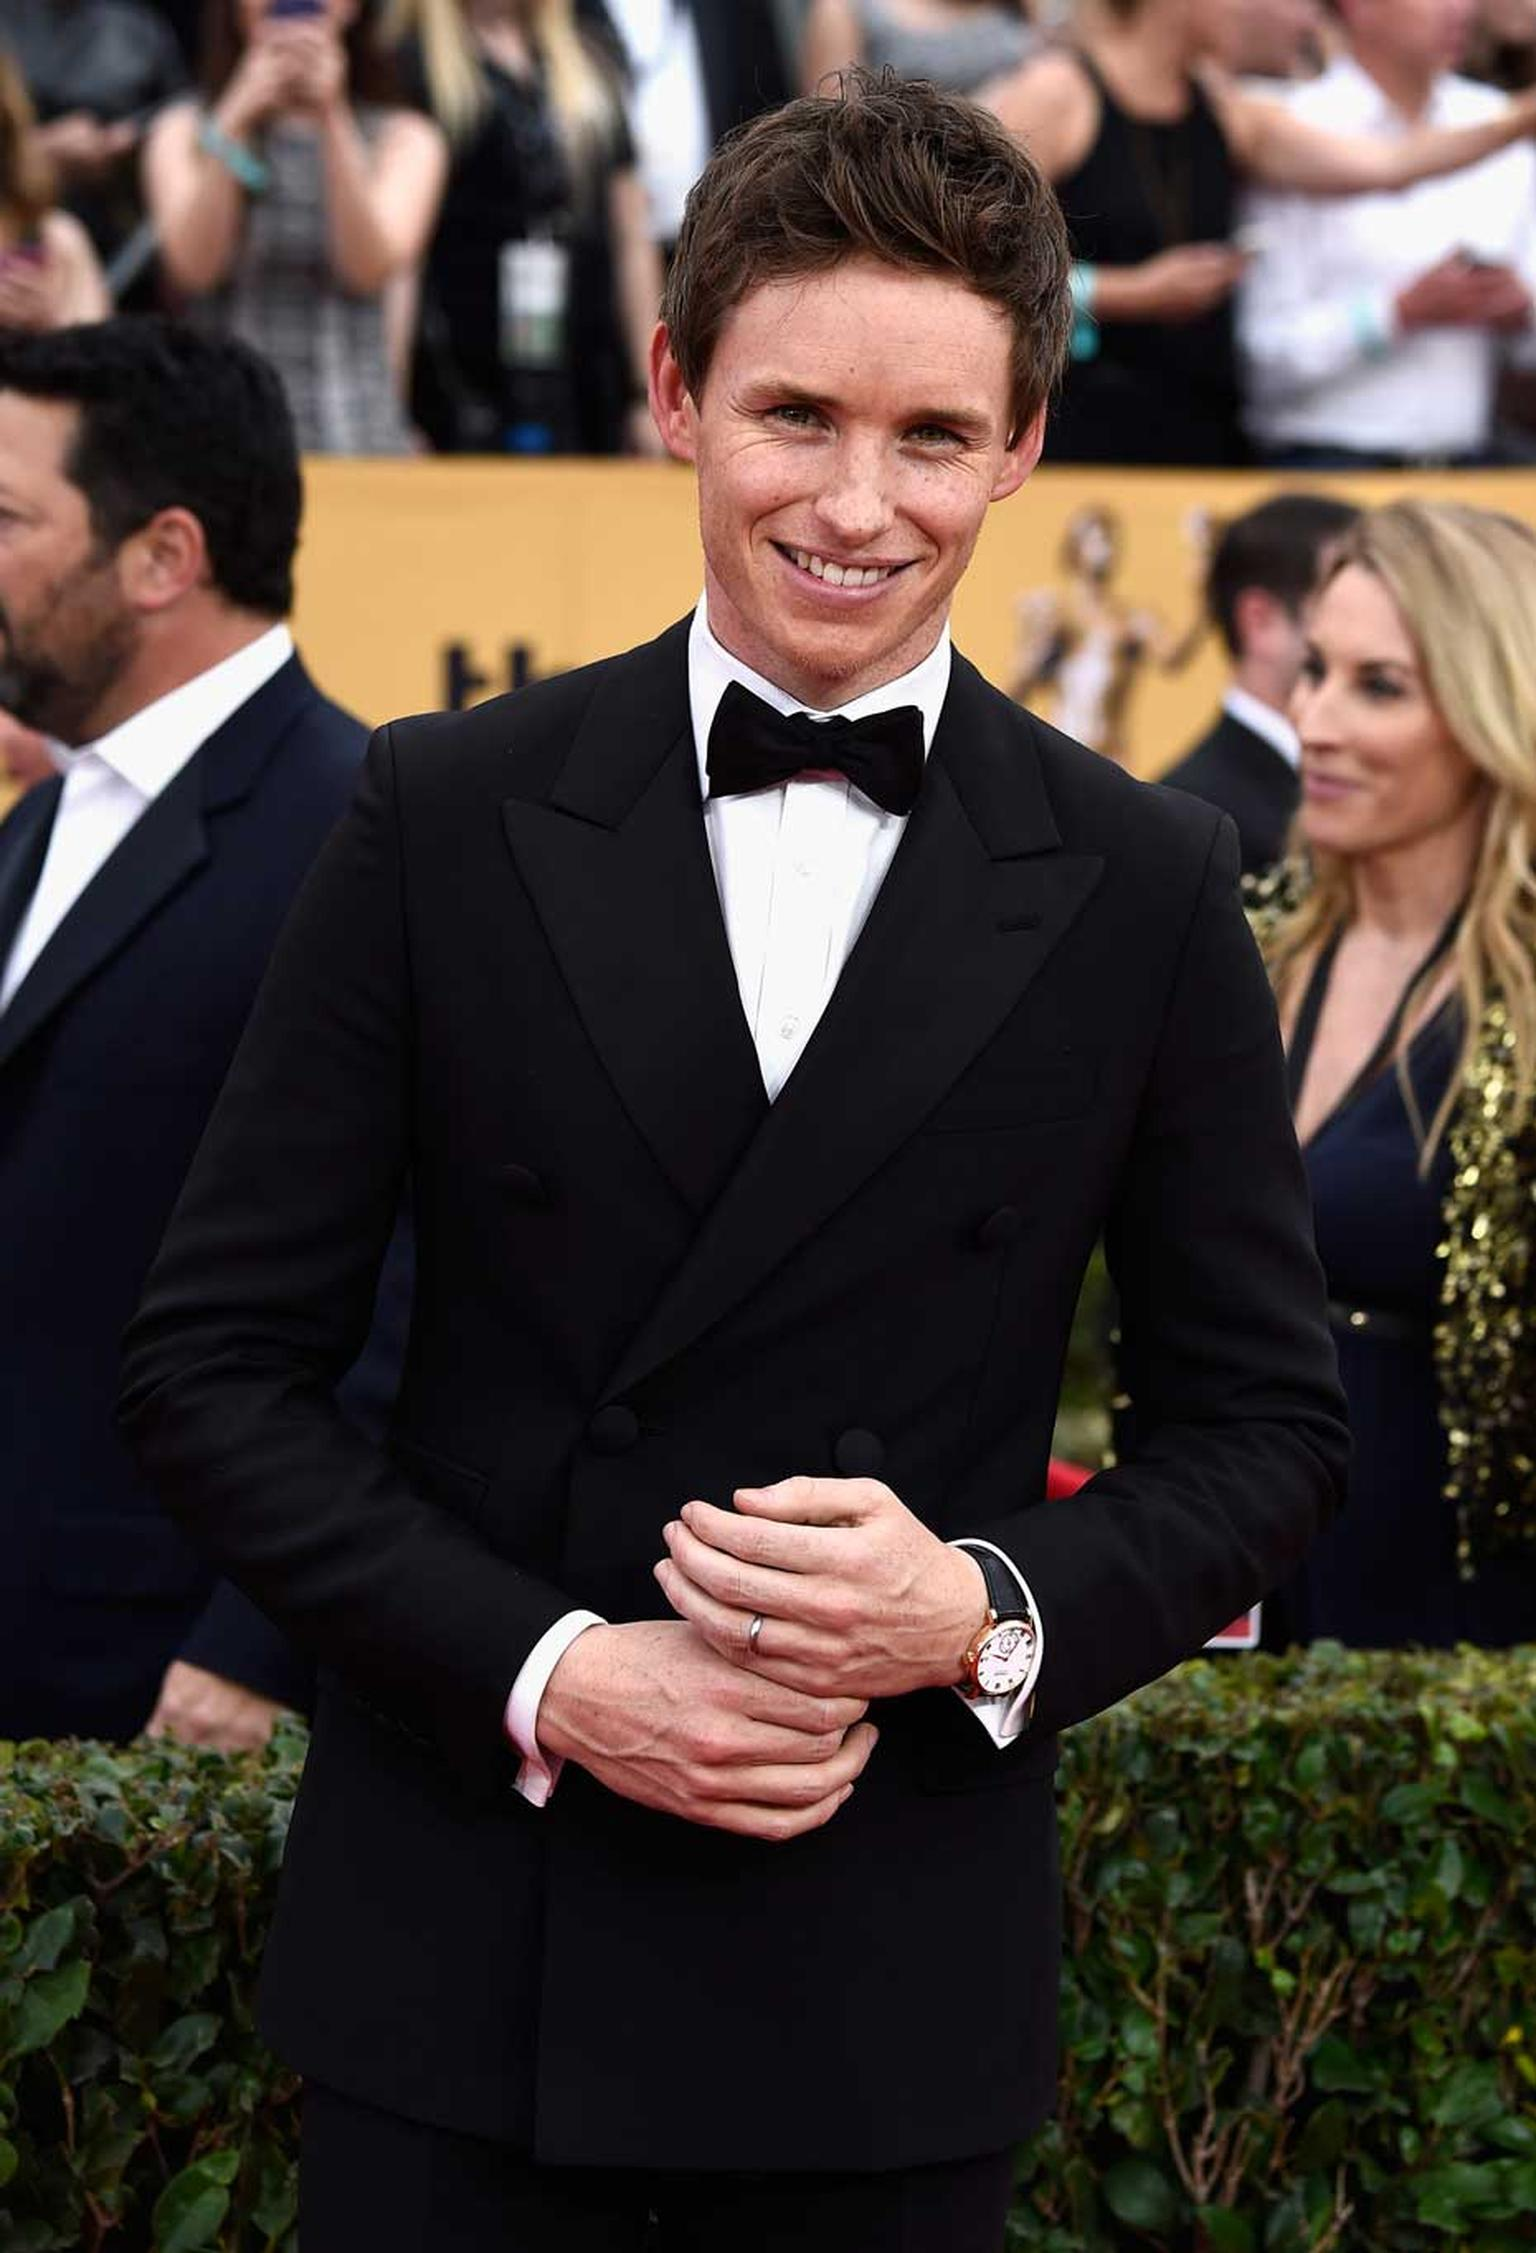 British actor Eddie Redmayne, winner of the Outstanding Performance by a Male Actor in a Leading Role award at the 2015 SAG awards, wore the Chopard Classic Manufacture watch in rose gold.